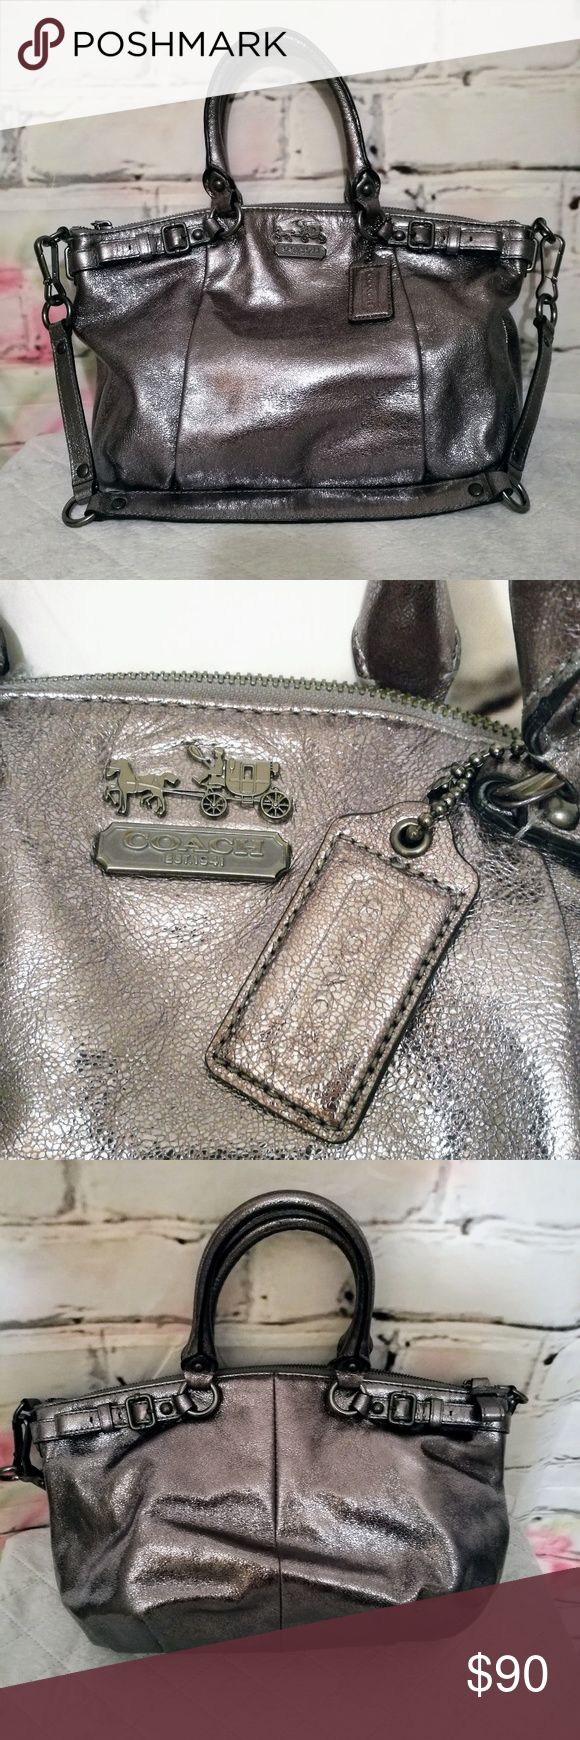 """🆕♥️Coach Madison Metallic Silver Satchel Coach Madison Metallic Leather Sophia Satchel (authentic) - foiled metallic silver leather, interior lined with beautiful cobal blue  - accented with buckles on front and back - strap is detachable - bag in great shape. Some very slight standard wear (barely noticeable) on inside at zipper. See last pic.  - Inside serial number H1173-18816 - Approx measurements: 14""""L x 10""""H x 3""""D -Strap Drop: 5"""" for handles and 10"""" detachable strap Coach Bags…"""